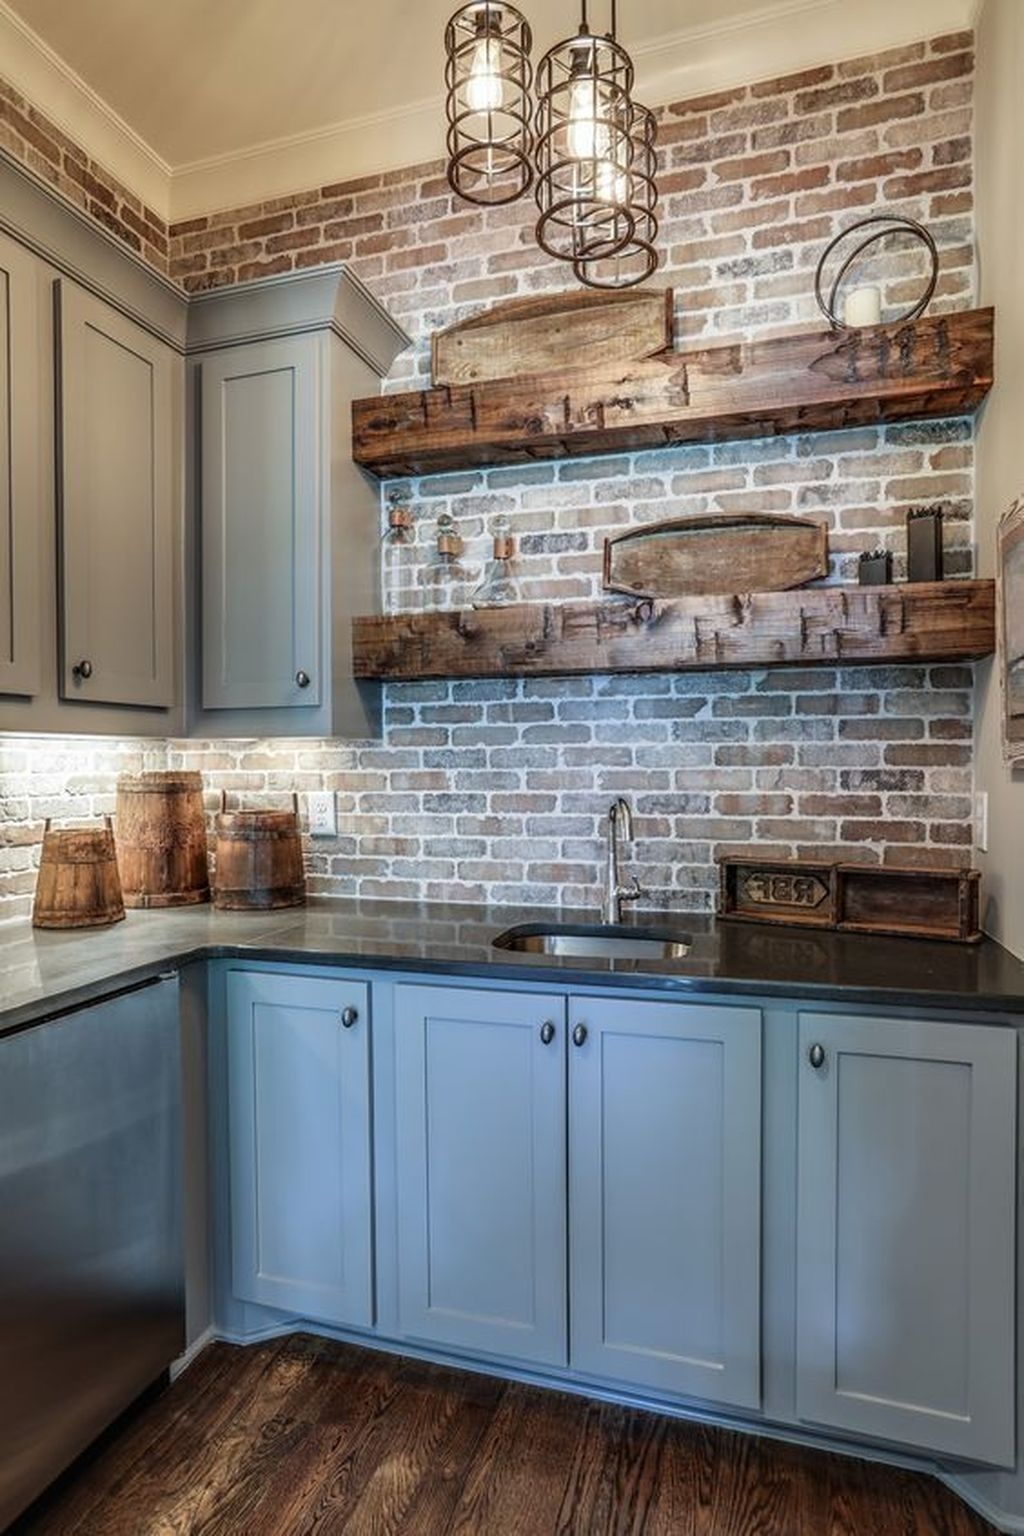 45+ Lovely Farmhouse Kitchen Design Ideas To Try - Decorating Ideas - Home Decor Ideas and Tips